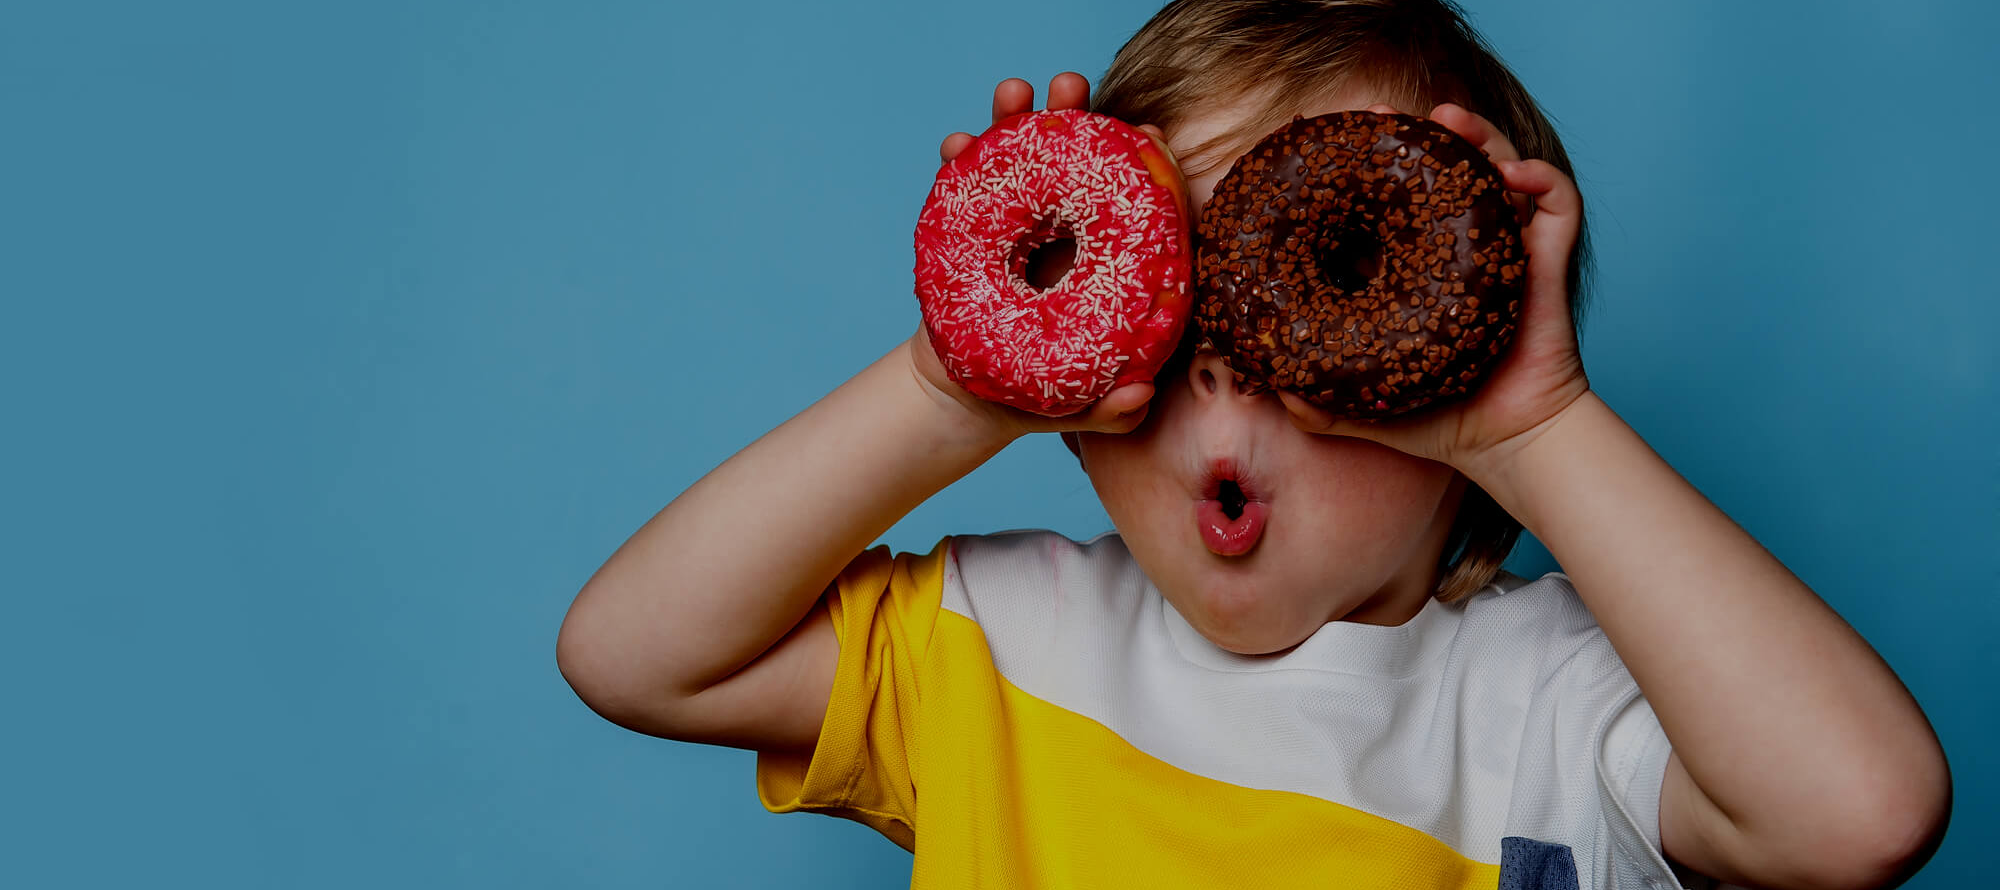 boy with donut eyes